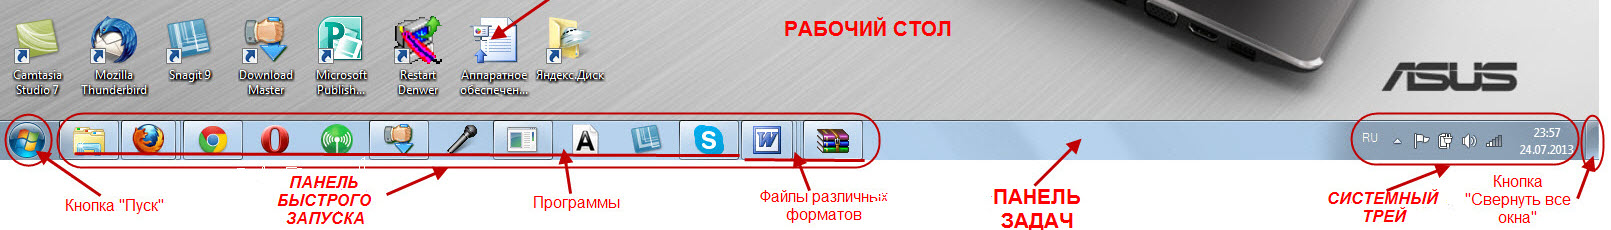 Windows_7._Panel'_zadach